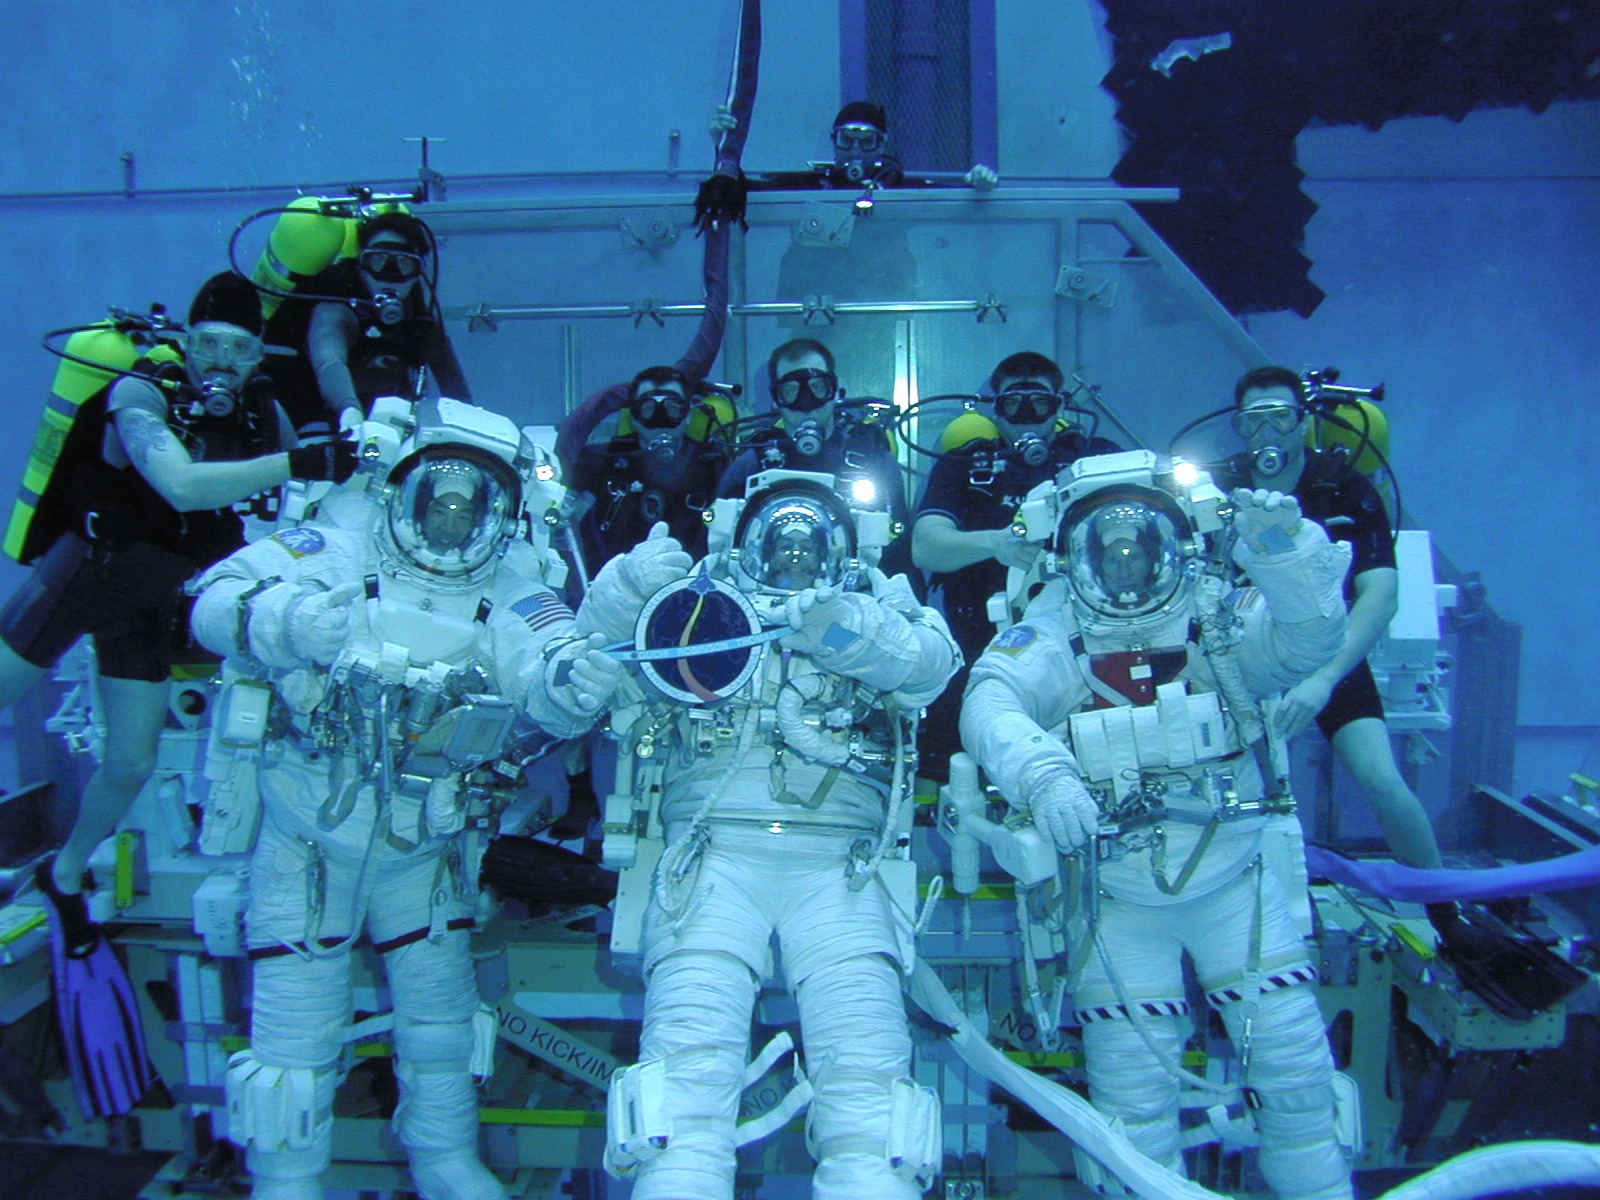 NASA Image & Video Library   STS-114 astronauts during underwater training   All credits to NASA.gov